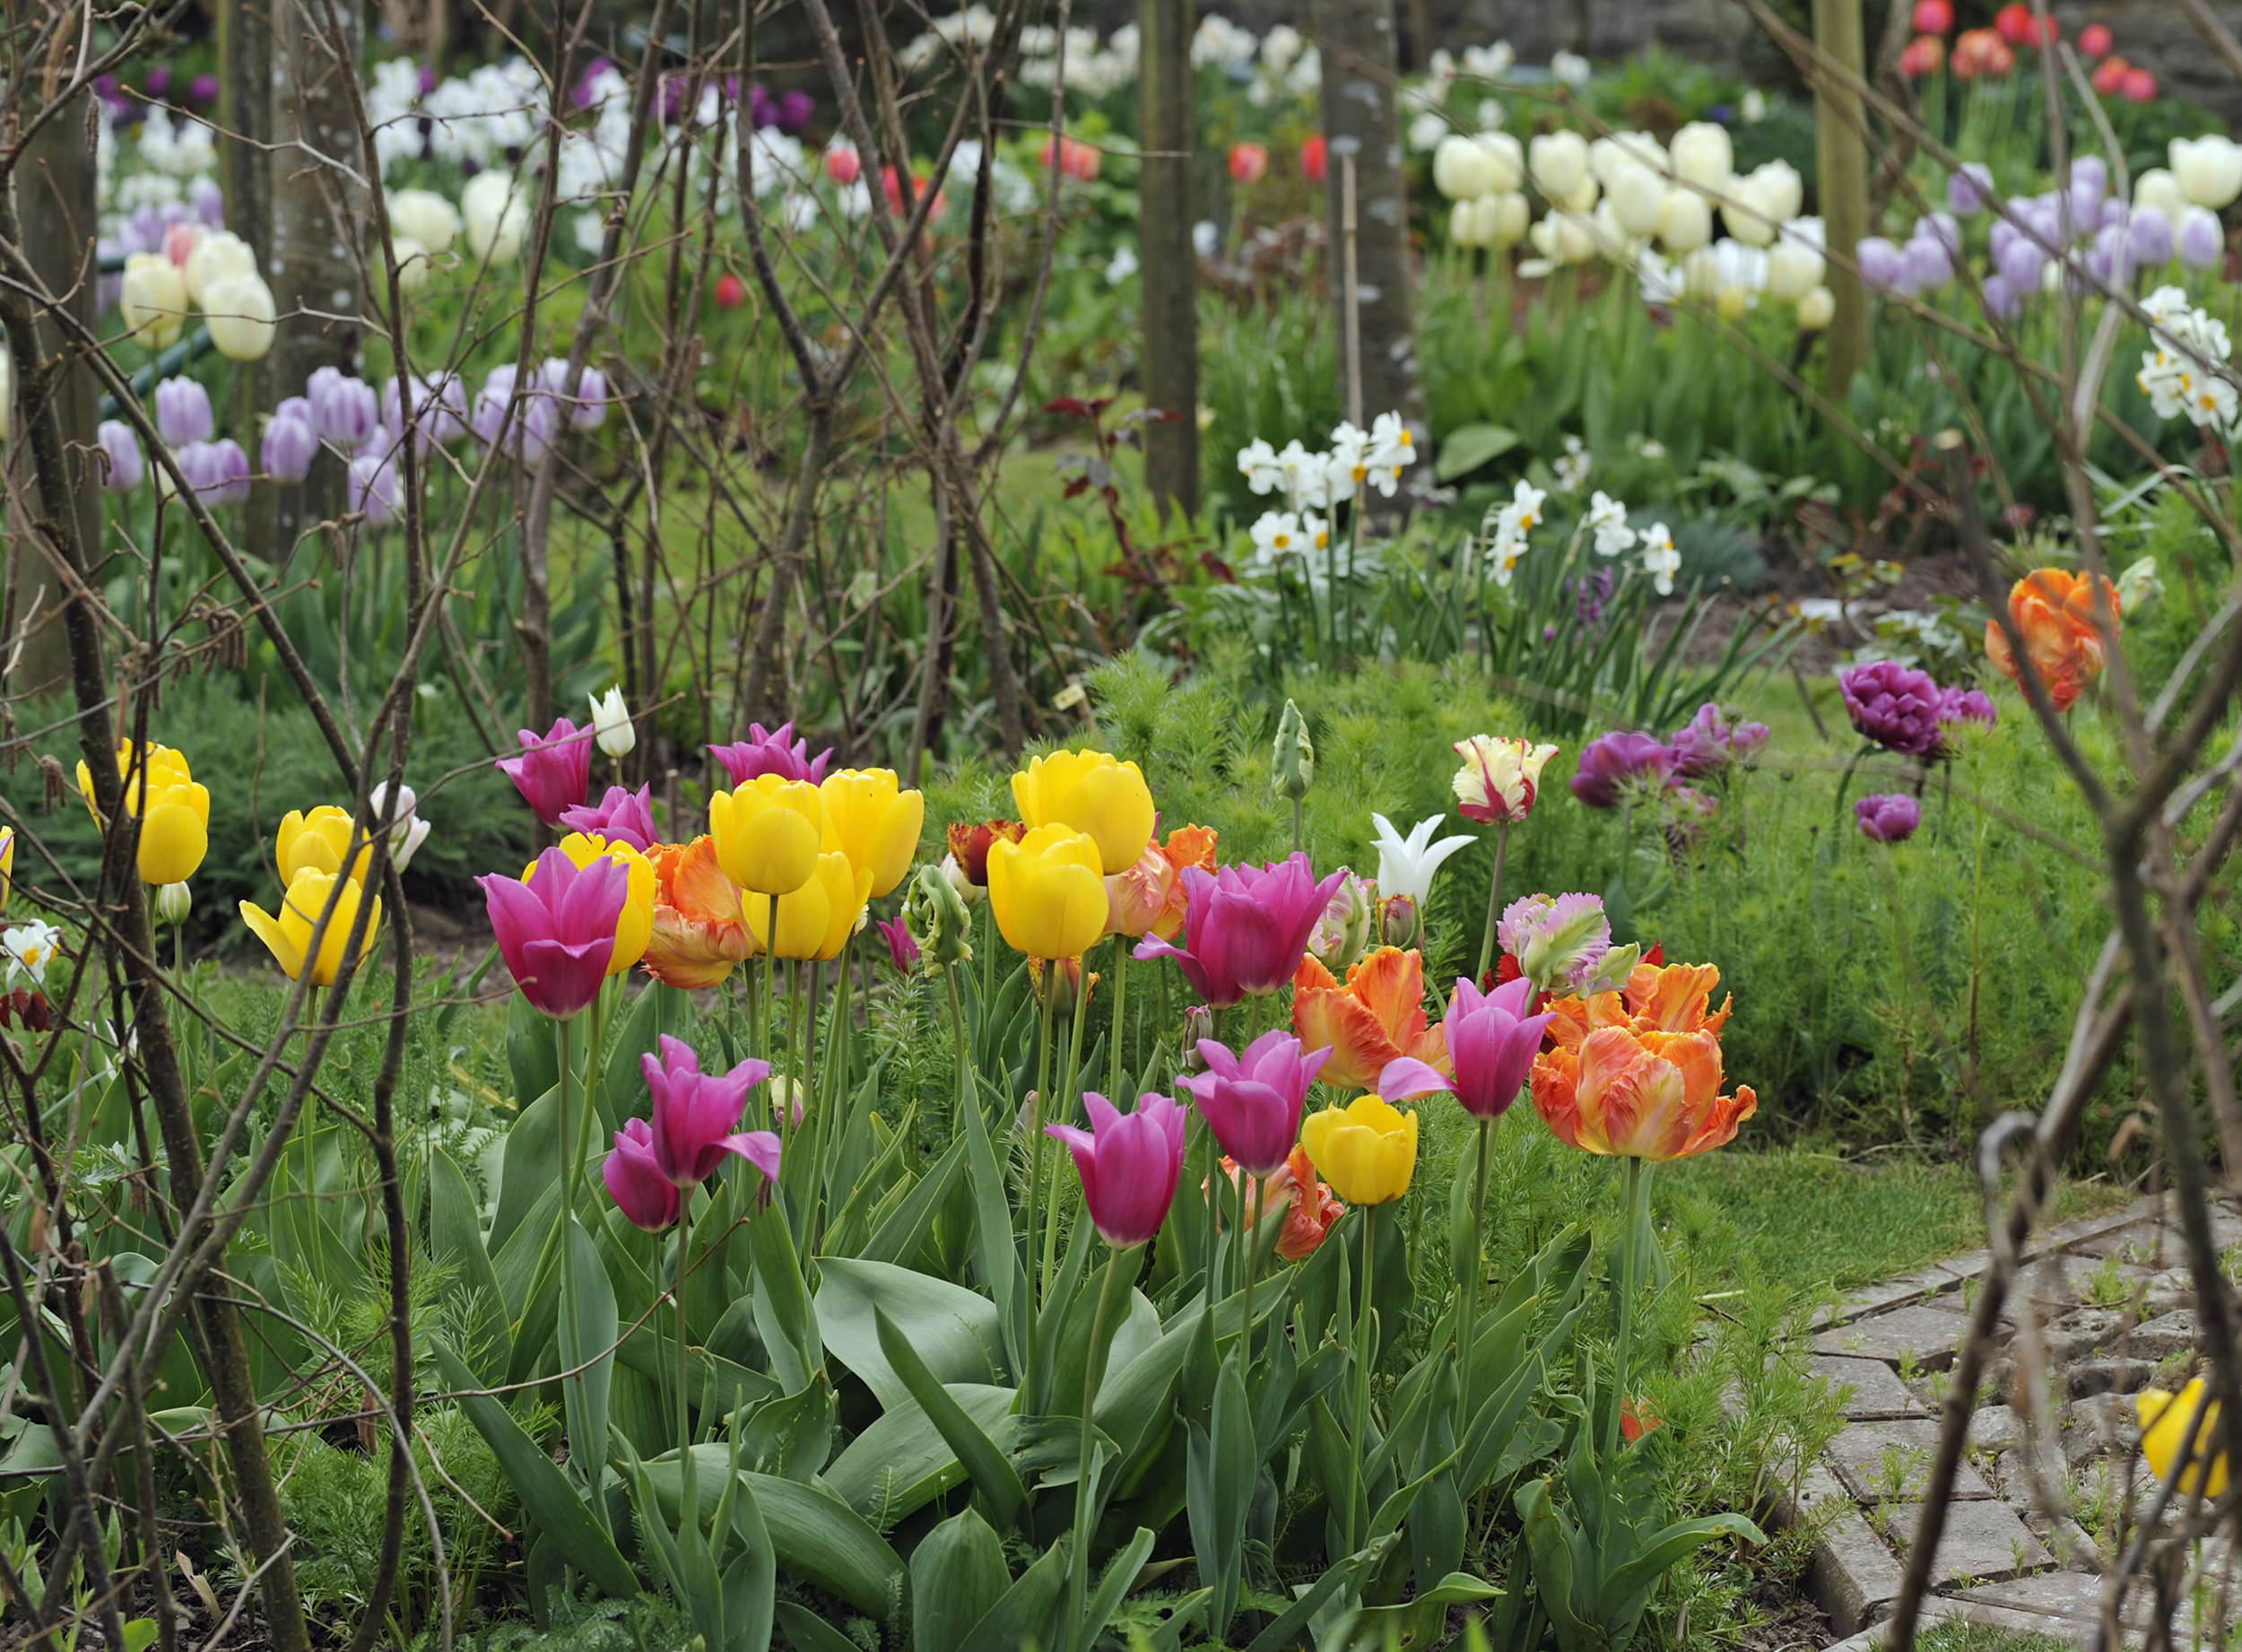 How To Grow Tulips By The Gardener Who Creates The Incomparable